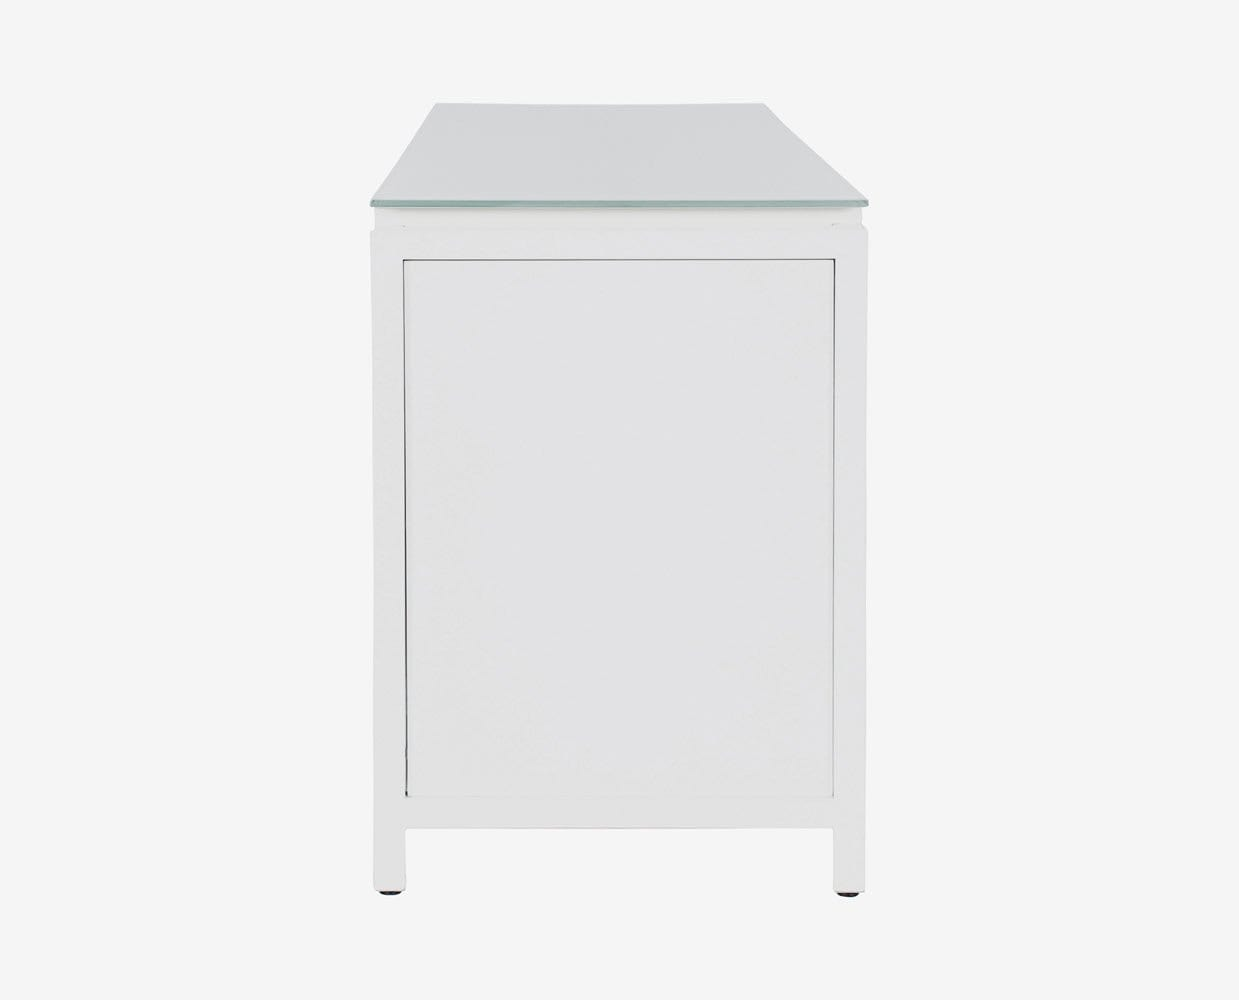 Compact functional minimalist modern office credenza